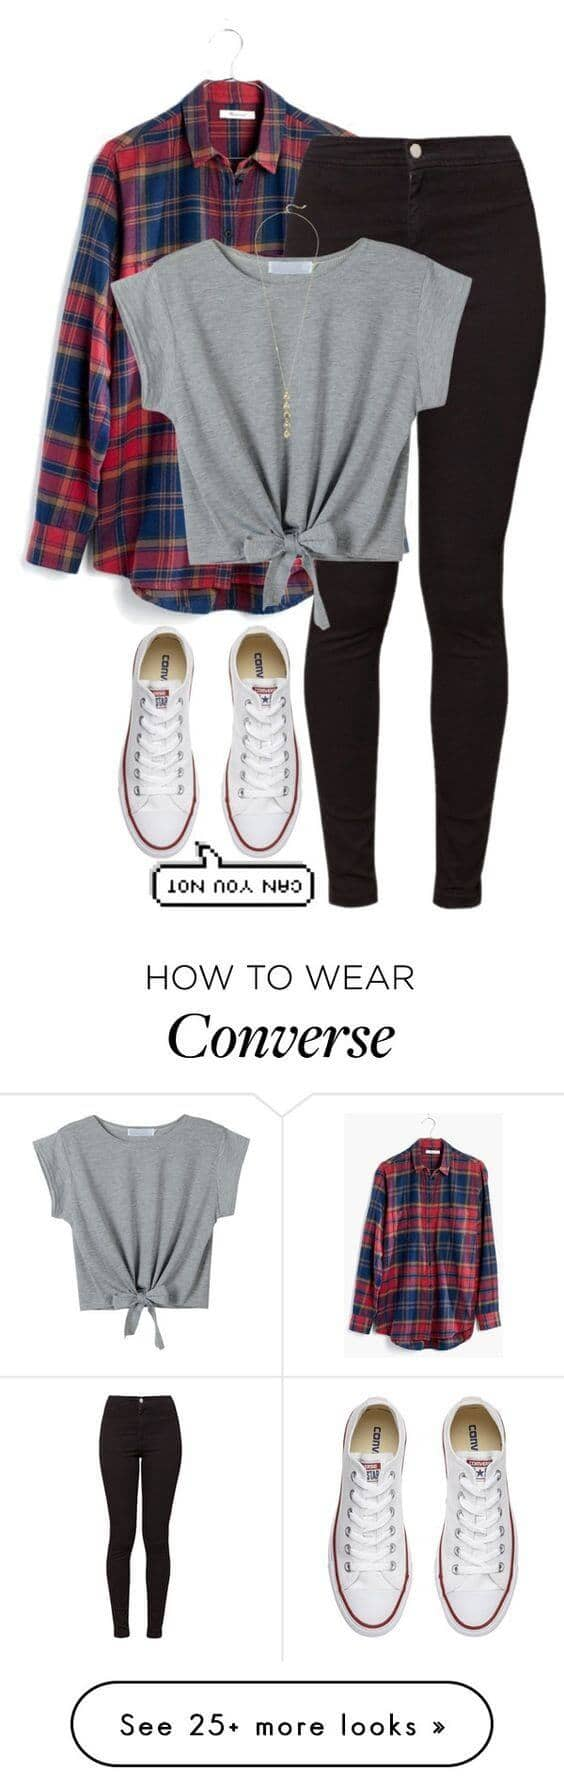 Spontaneous and Colorful Combos, Quick-Fix